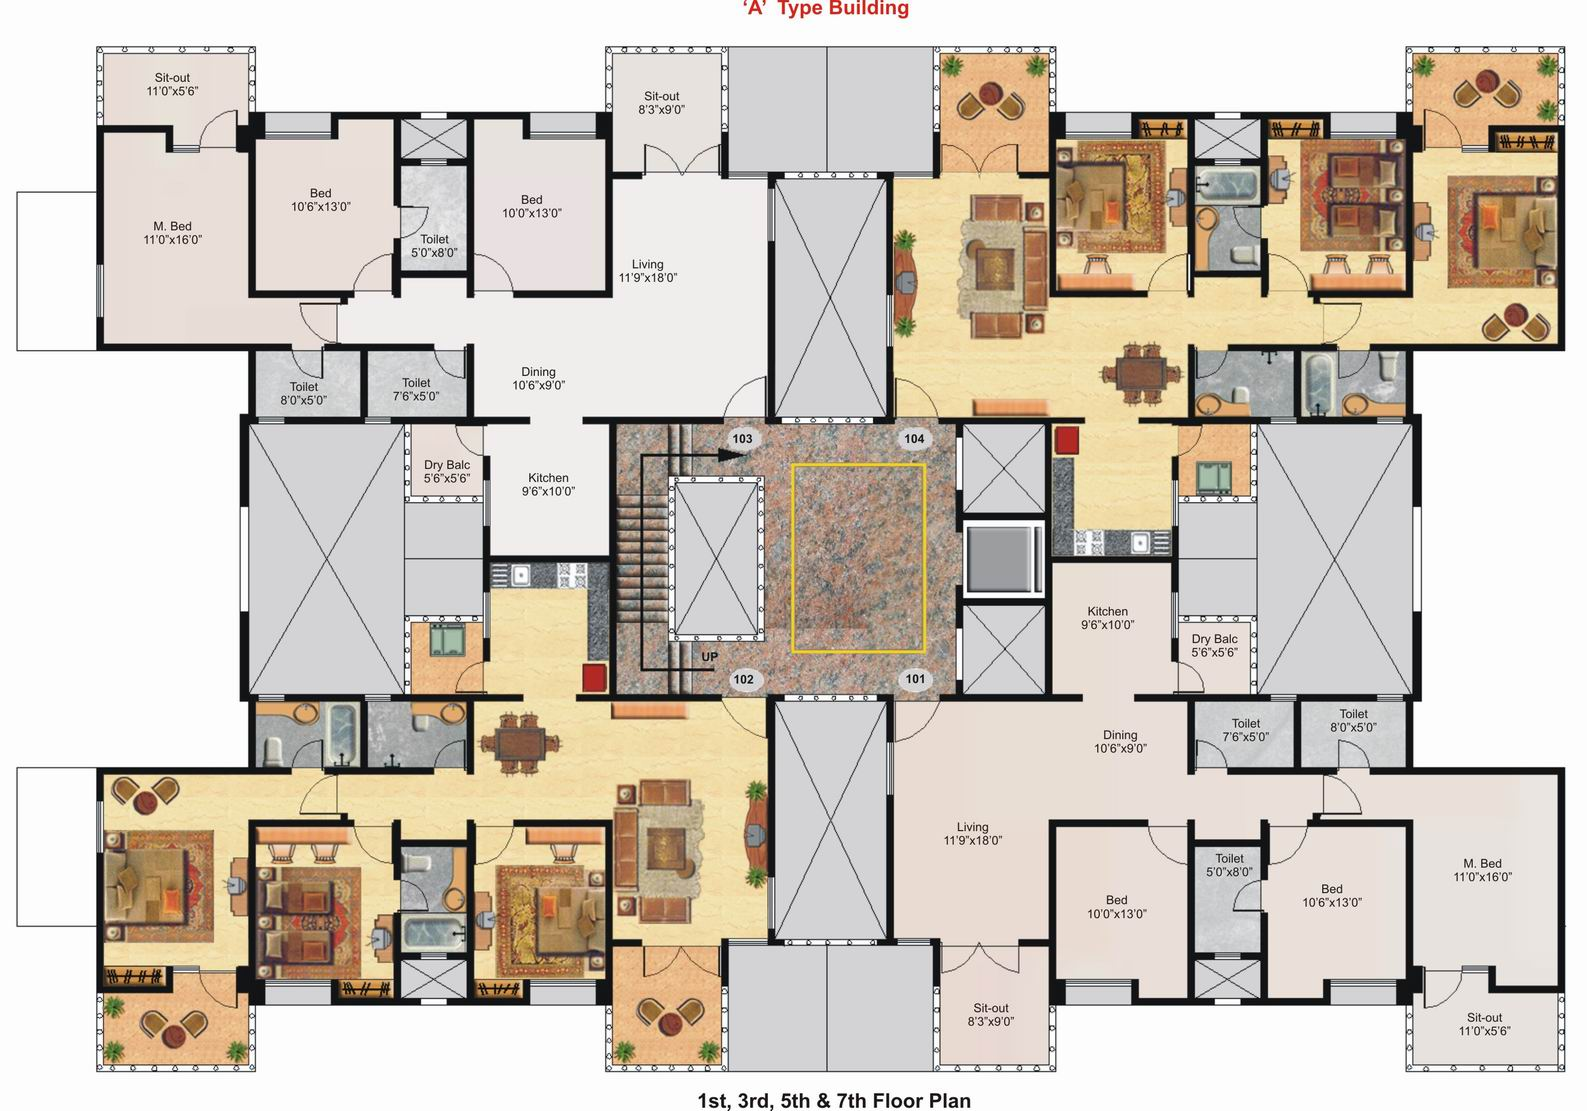 3d floor plan of a celeb mansion Mansion floor plans